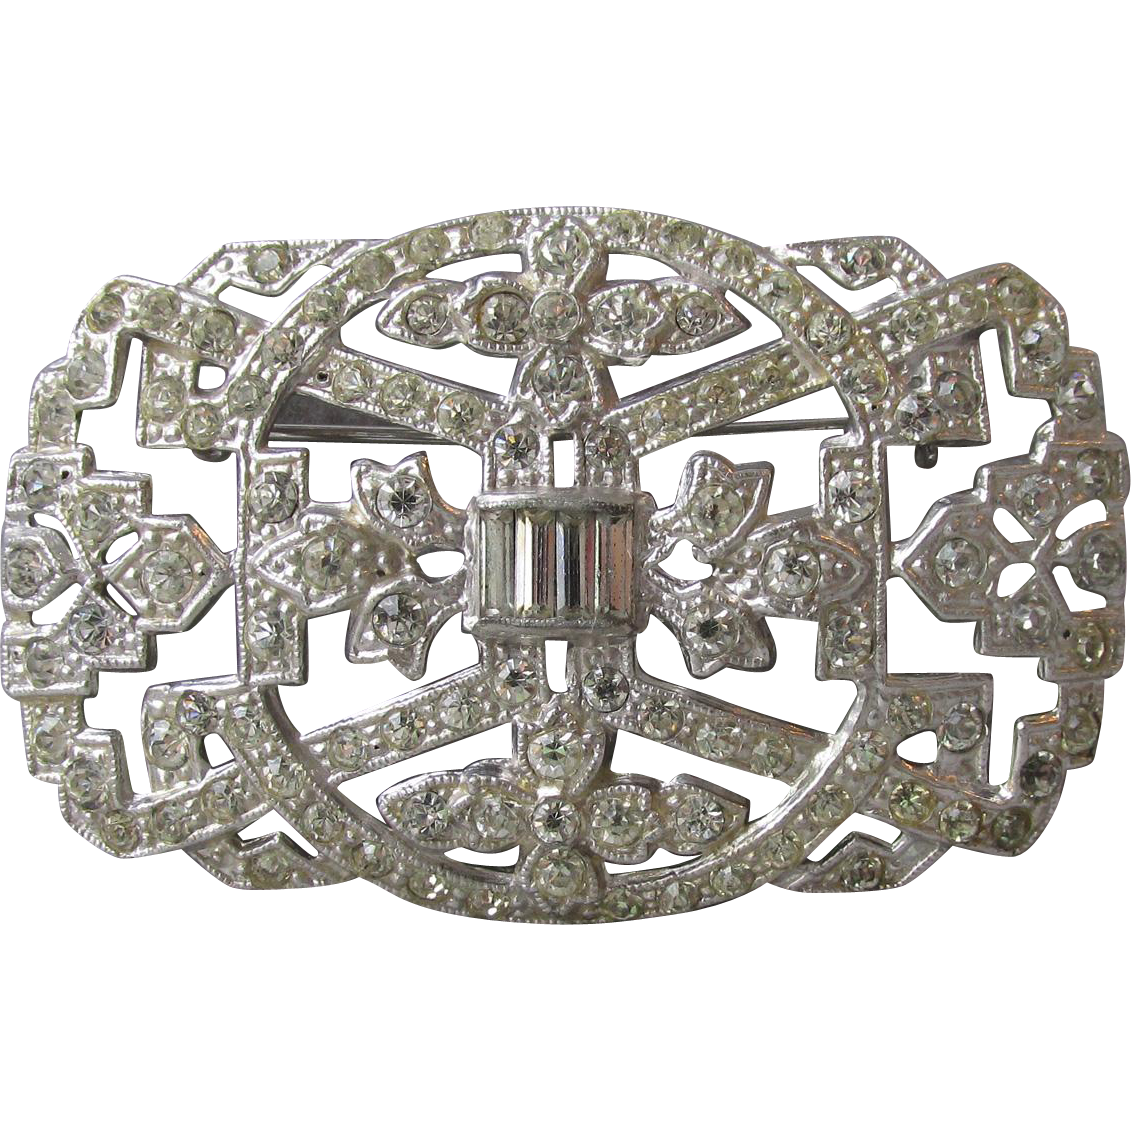 Magnificent 1930's Art Deco Diamante Rhinestone Rhodium Plated Brooch, Large Vintage Pin